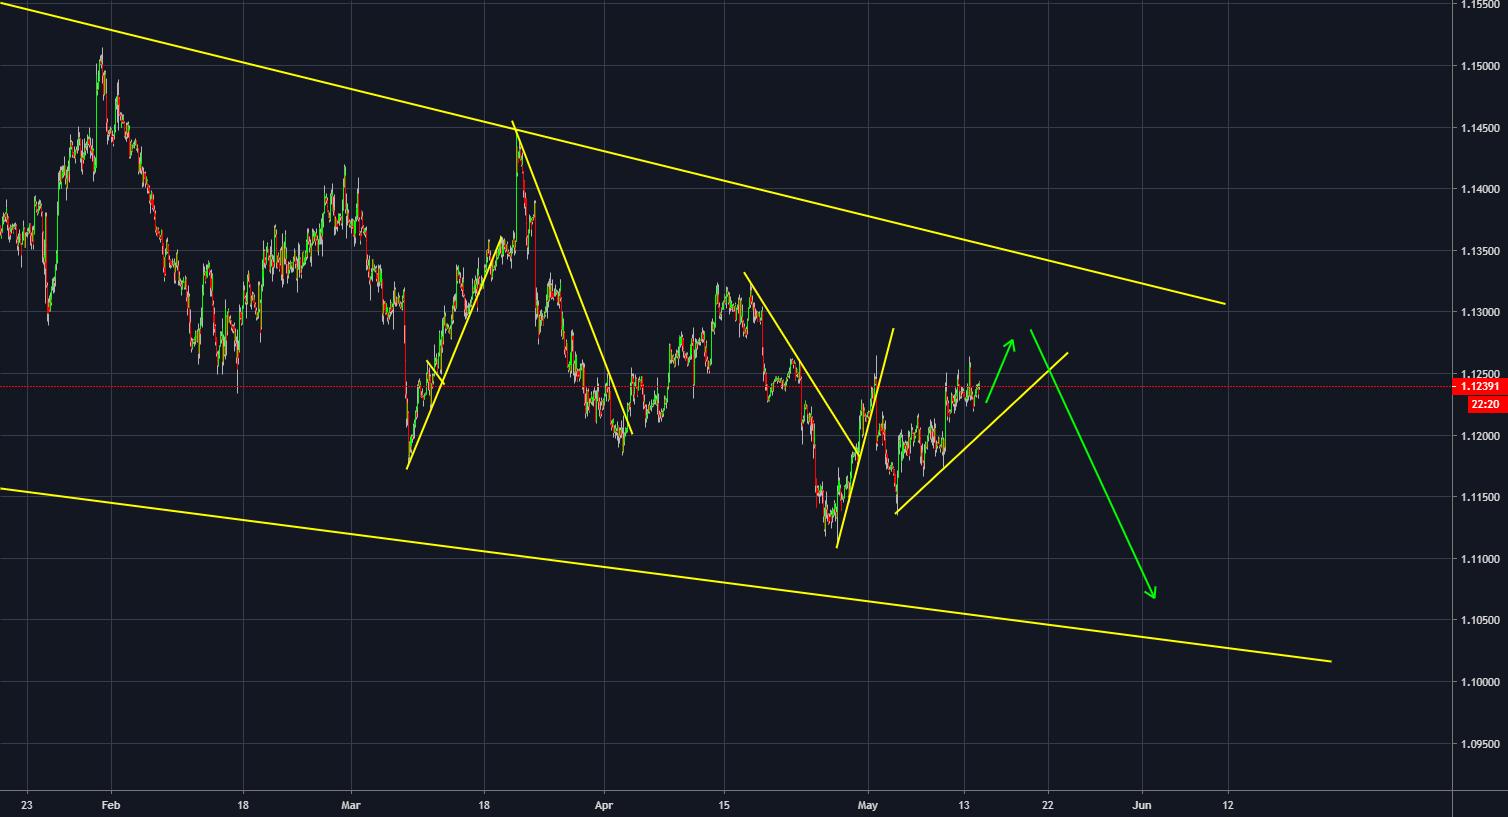 Looking for a short trade stet up for FX:EURUSD by SteveNixon